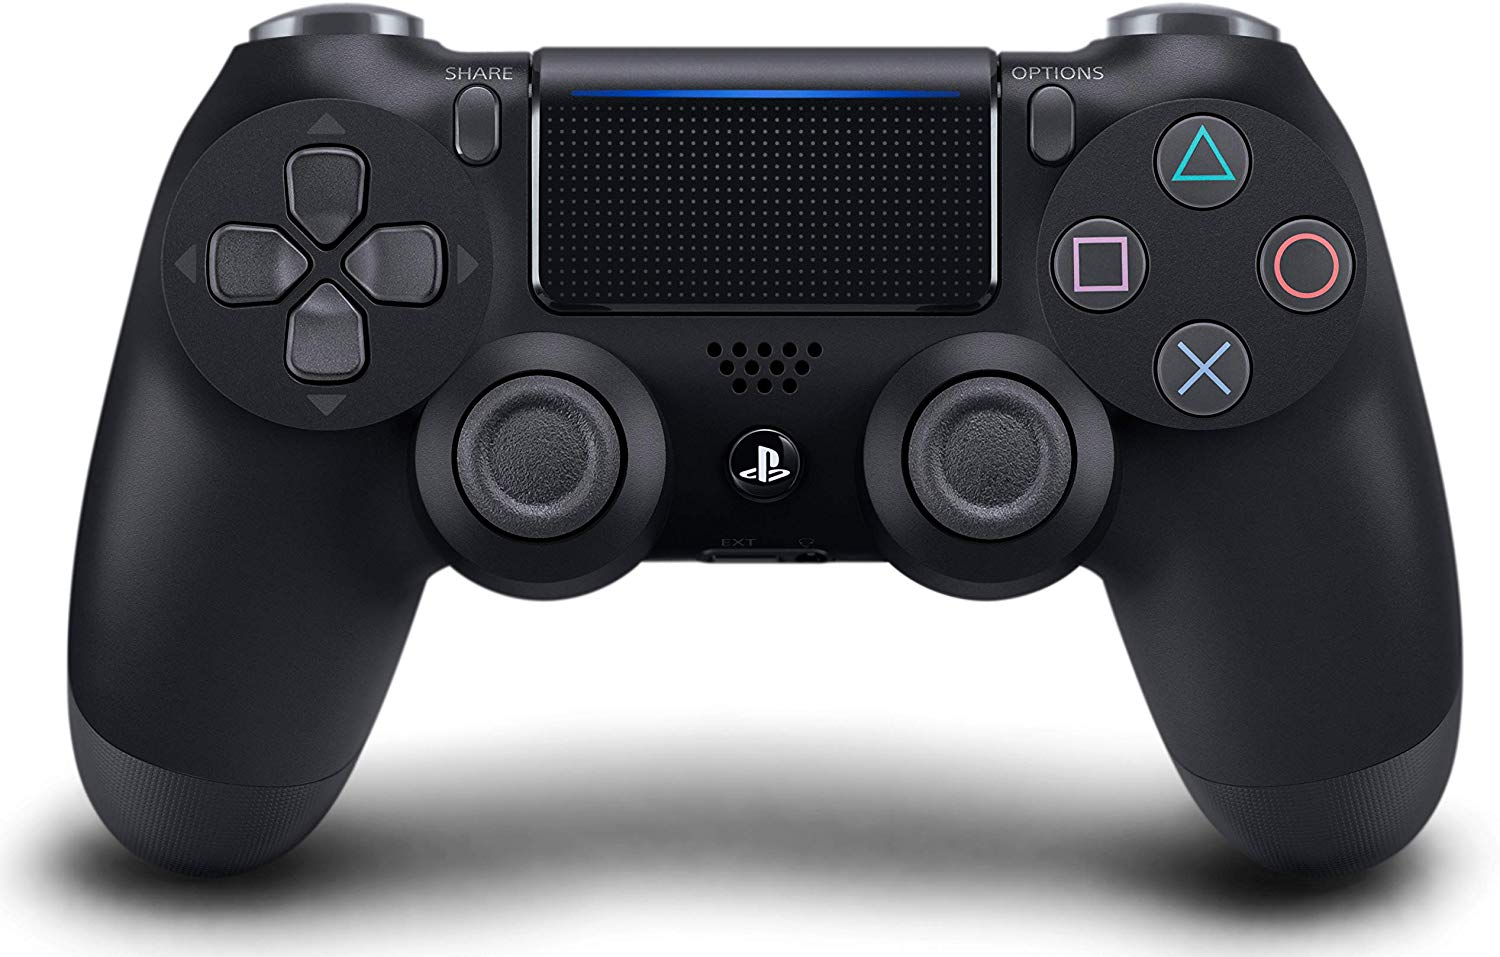 DualShock 4 Wireless Controller for PlayStation 4 V2 (Jet Black)